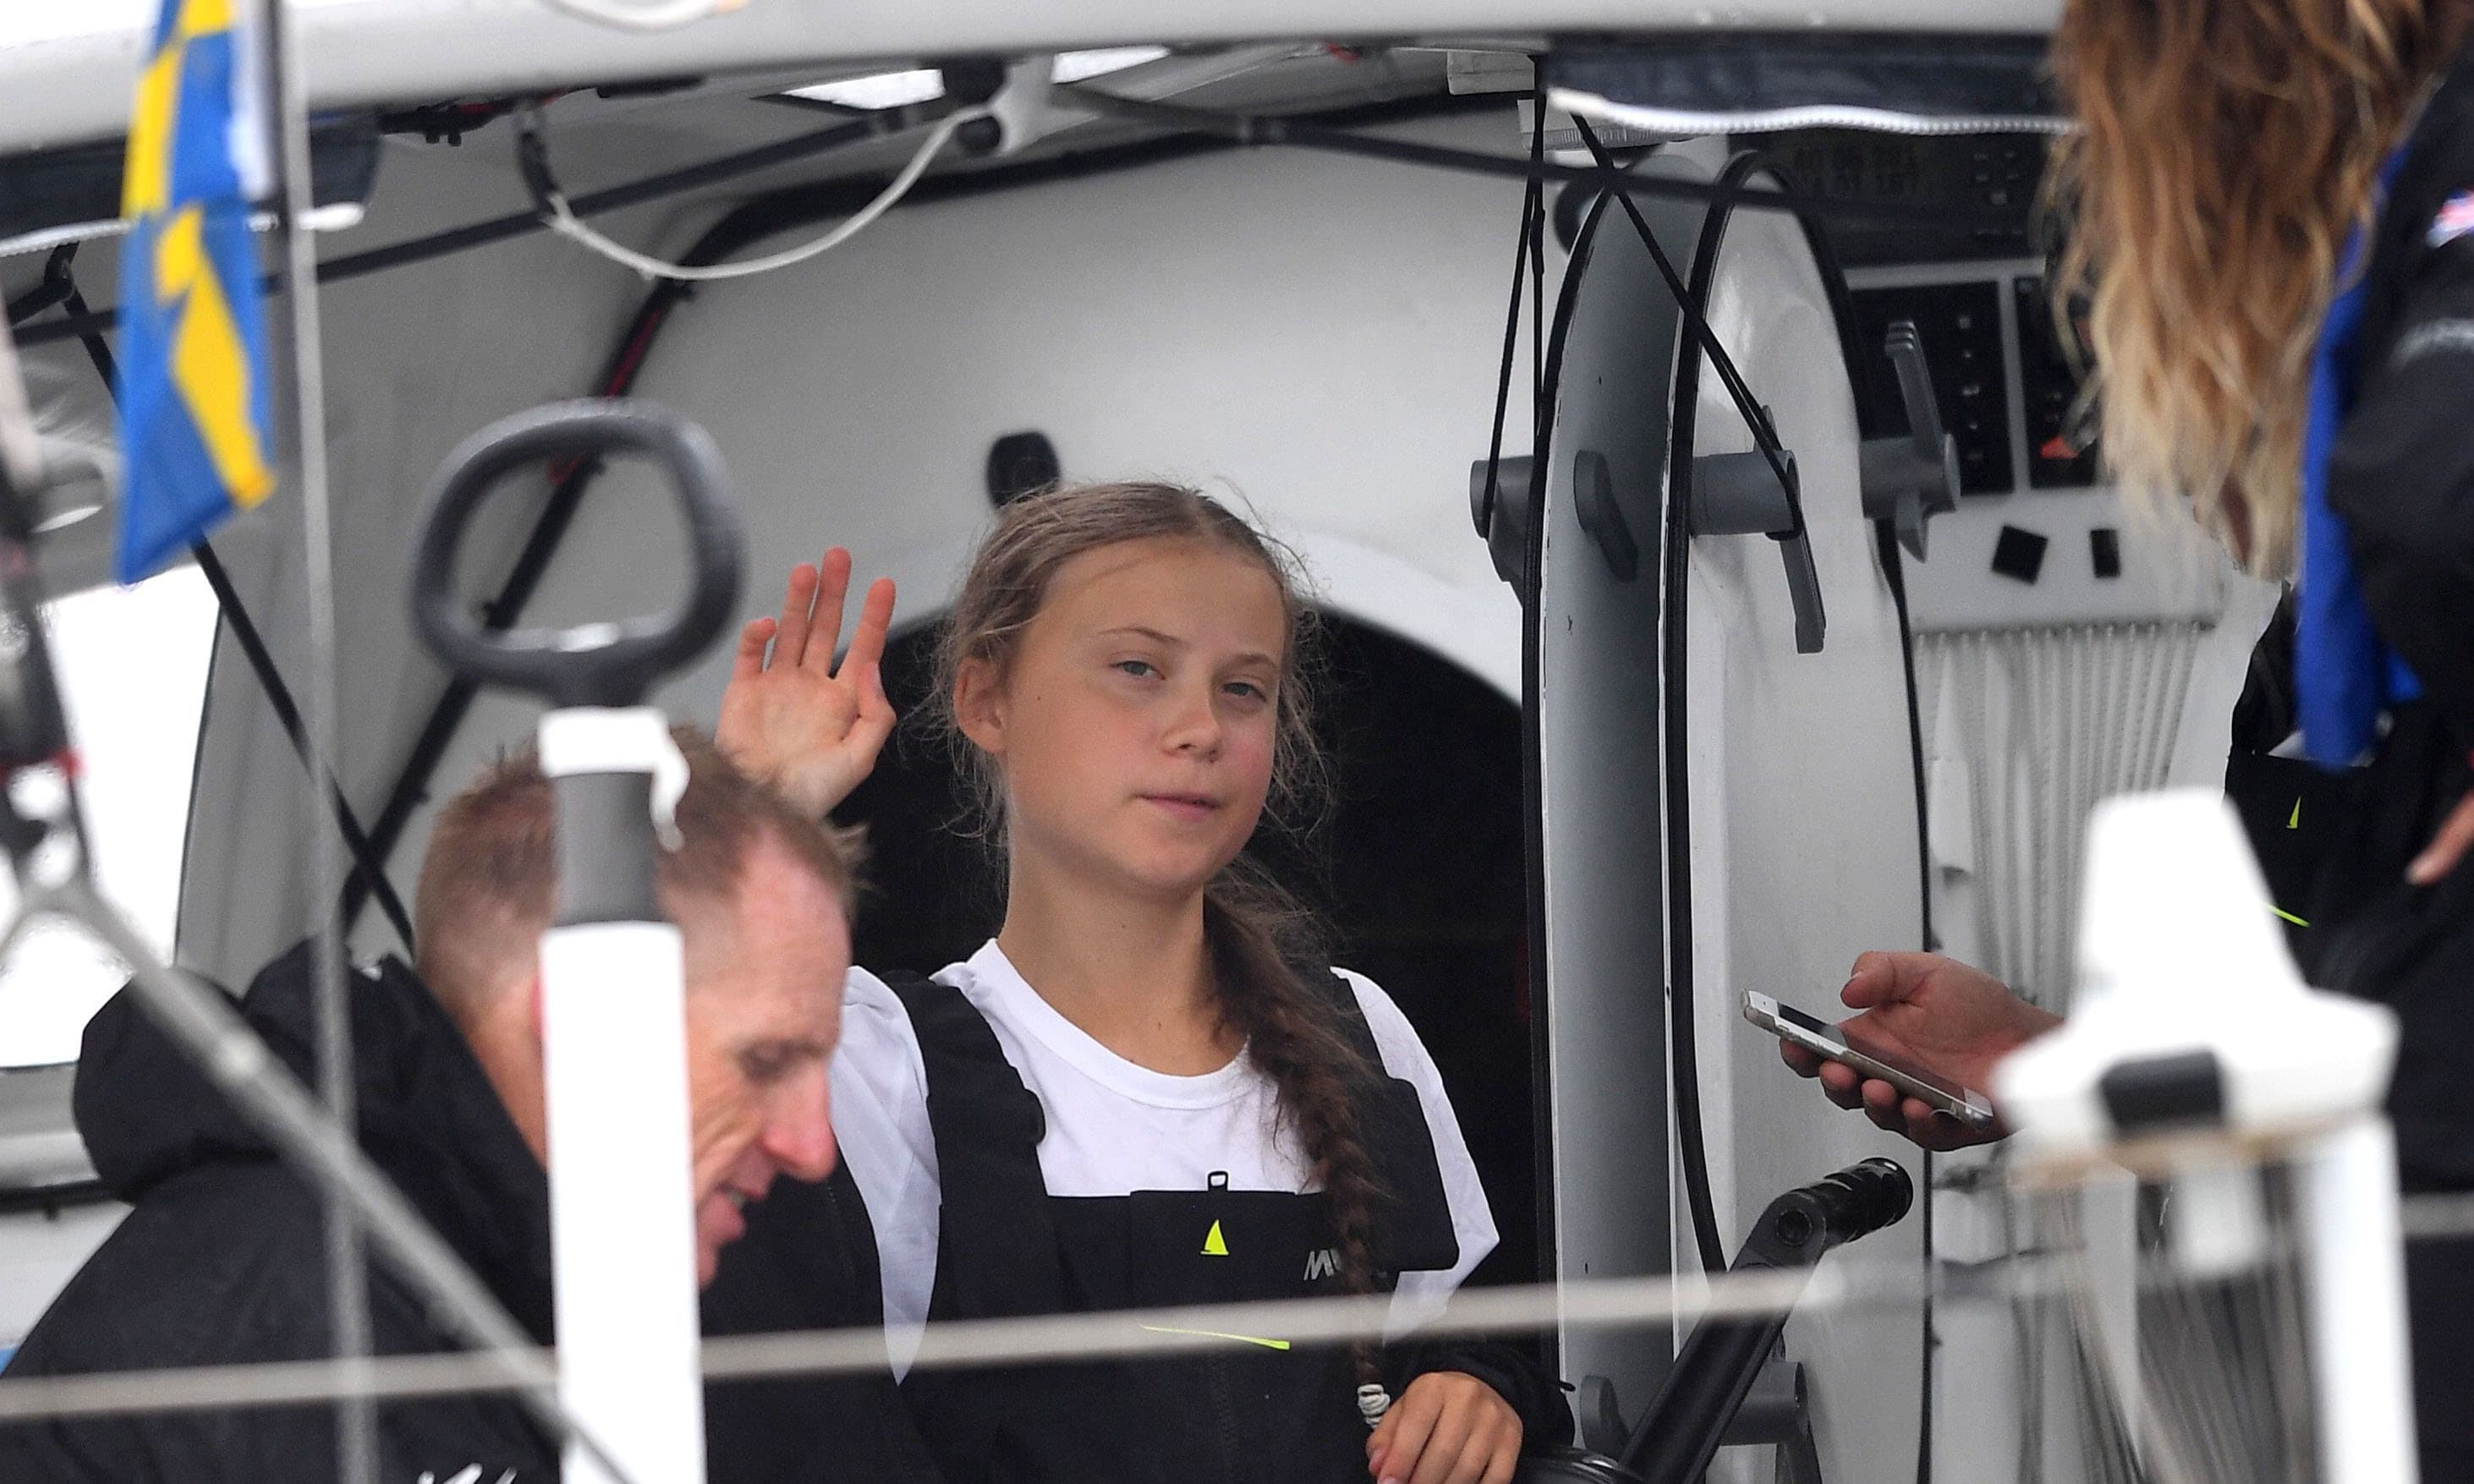 Swedish climate activist Greta Thunberg, 16, arrives in the US after a 15-day journey crossing the Atlantic in the Malizia II, a zero-carbon yacht. — AFP/File